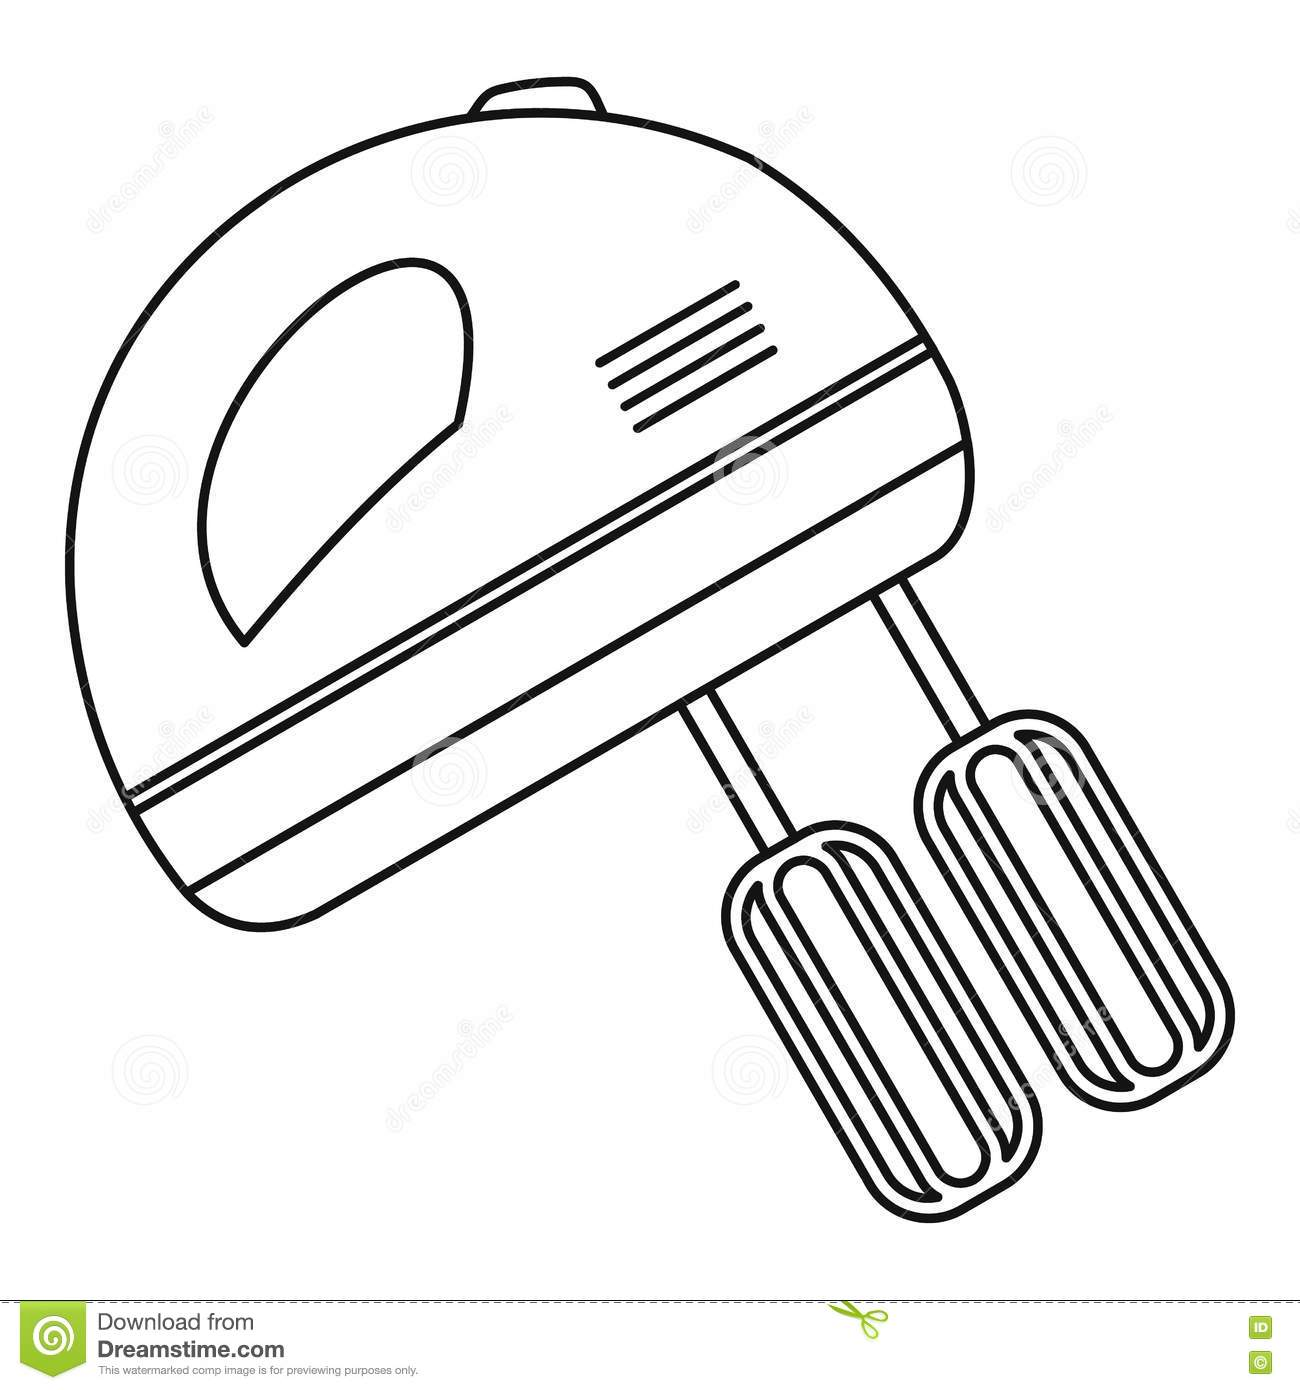 Cartoon Kitchen Mixer ~ Hand mixer icon outline style stock vector illustration